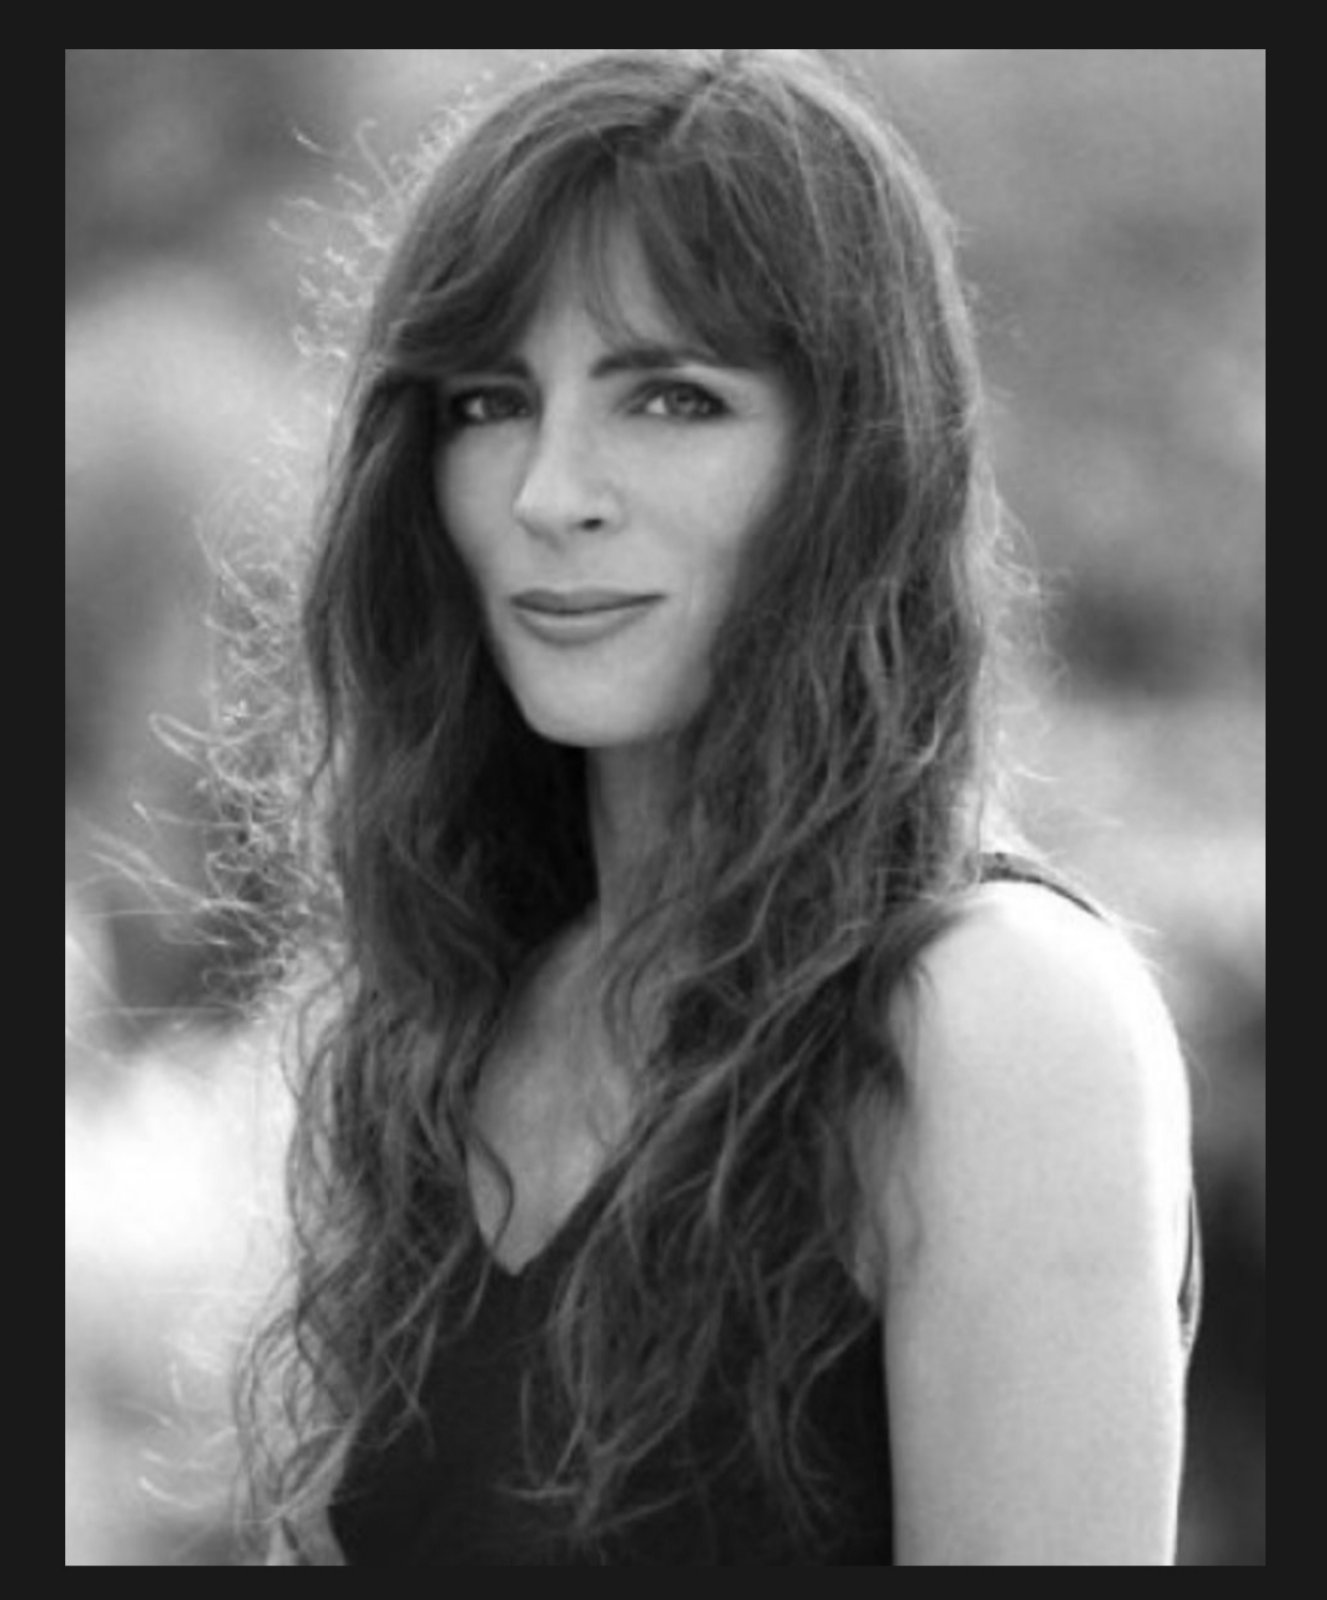 IN MEMORIAM ( Mira Furlan 7 September 1955 – 20 January 2021 )